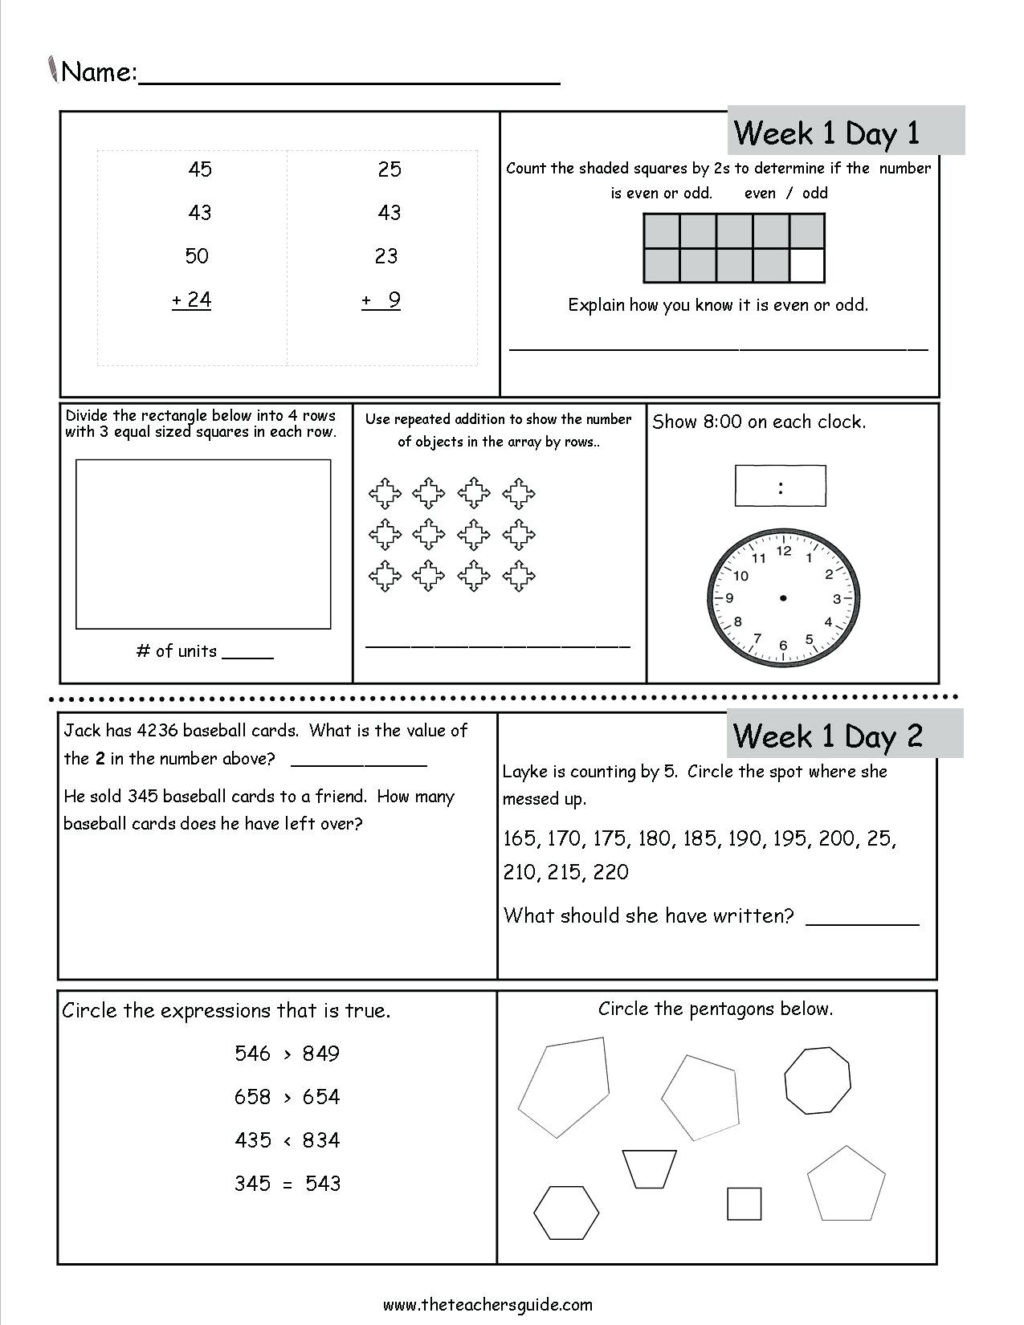 30 Unit Circle Practice Worksheet | Education Template